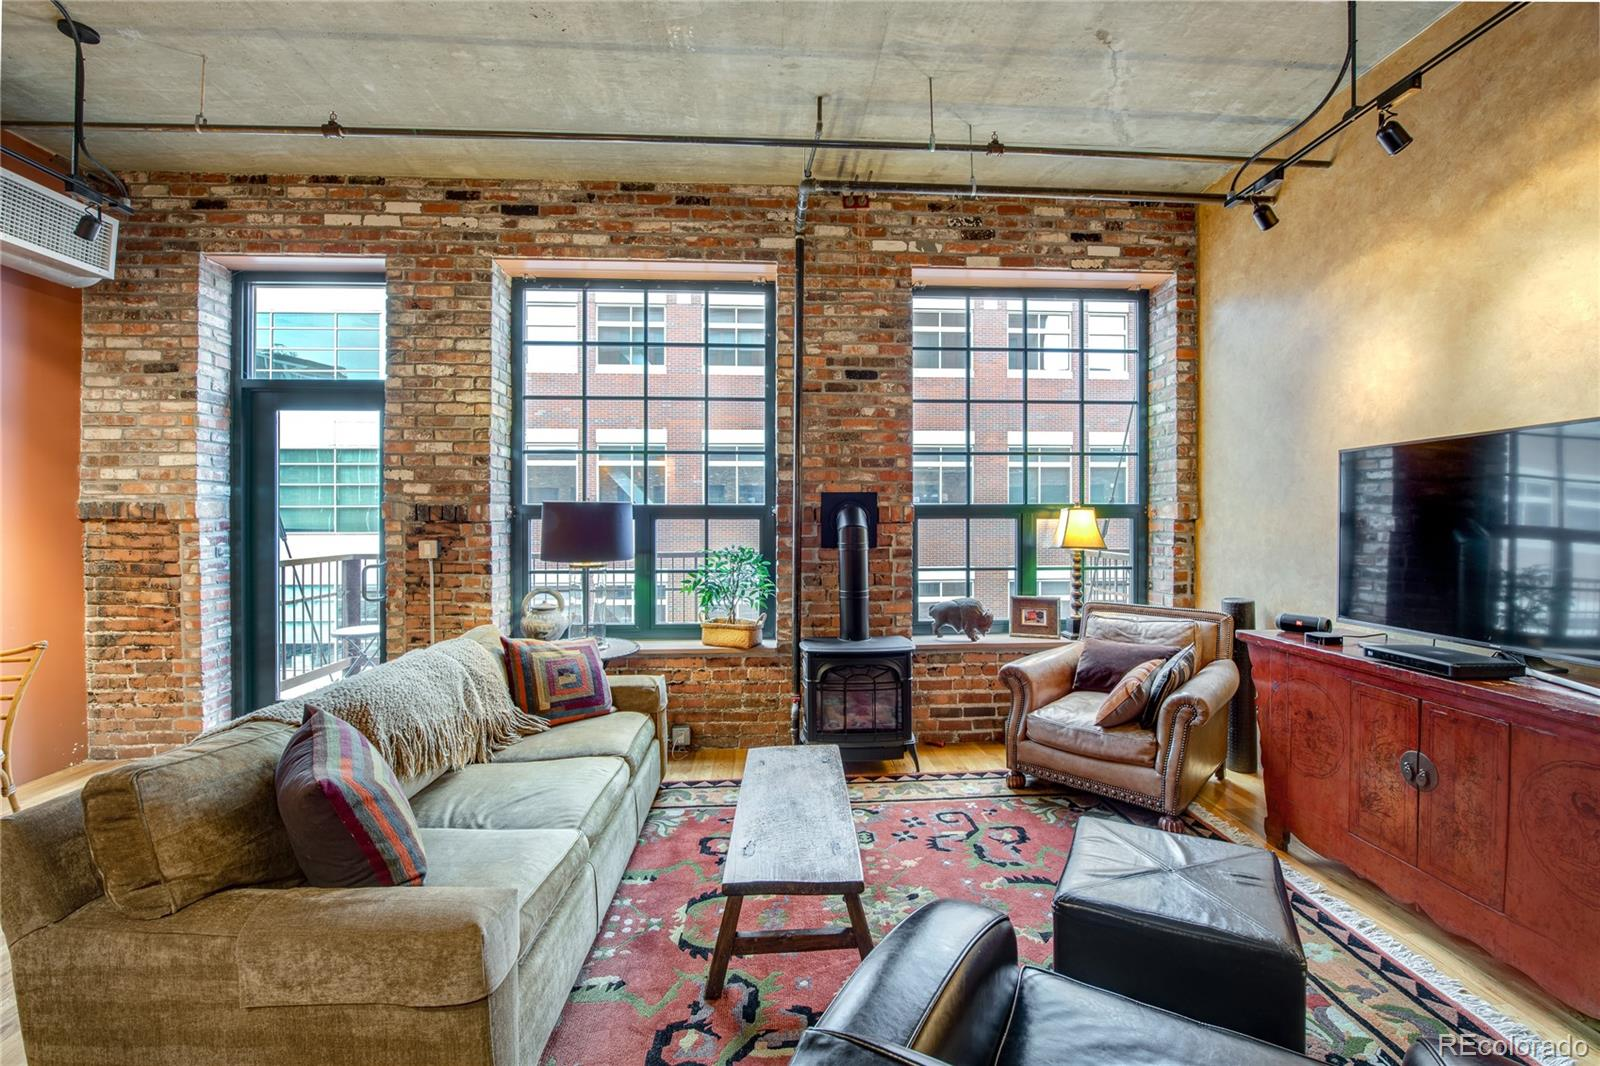 Beautiful loft in the Historic Ice House Lofts. Best location for everything LoDo and Downtown has to offer. Sports venues, restaurants, cultural events, train to the plain, Union Station (Denver's living room) Cherry Creek Path, and more. 1 bedroom (very large), 1 bath, open floor plan with living area, dining area, great kitchen with large island for entertaining, Fire place Virginia Stove. Balcony with a view of the top of Coor's Field. 1 parking in garage, and 1 storage unit. Exposed Brick. Large windows across one end of the loft. A very good one bedroom at the Ice House, probably one of the best. The building has great amenities. Full size fitness room with up to date equipment, roof top deck to enjoy the views, entertain or just hang out. Don't miss this one. If you want to be downtown this is the place to be. Tenant needs 30 days notice. No Showings until Friday, February 7, 2020.